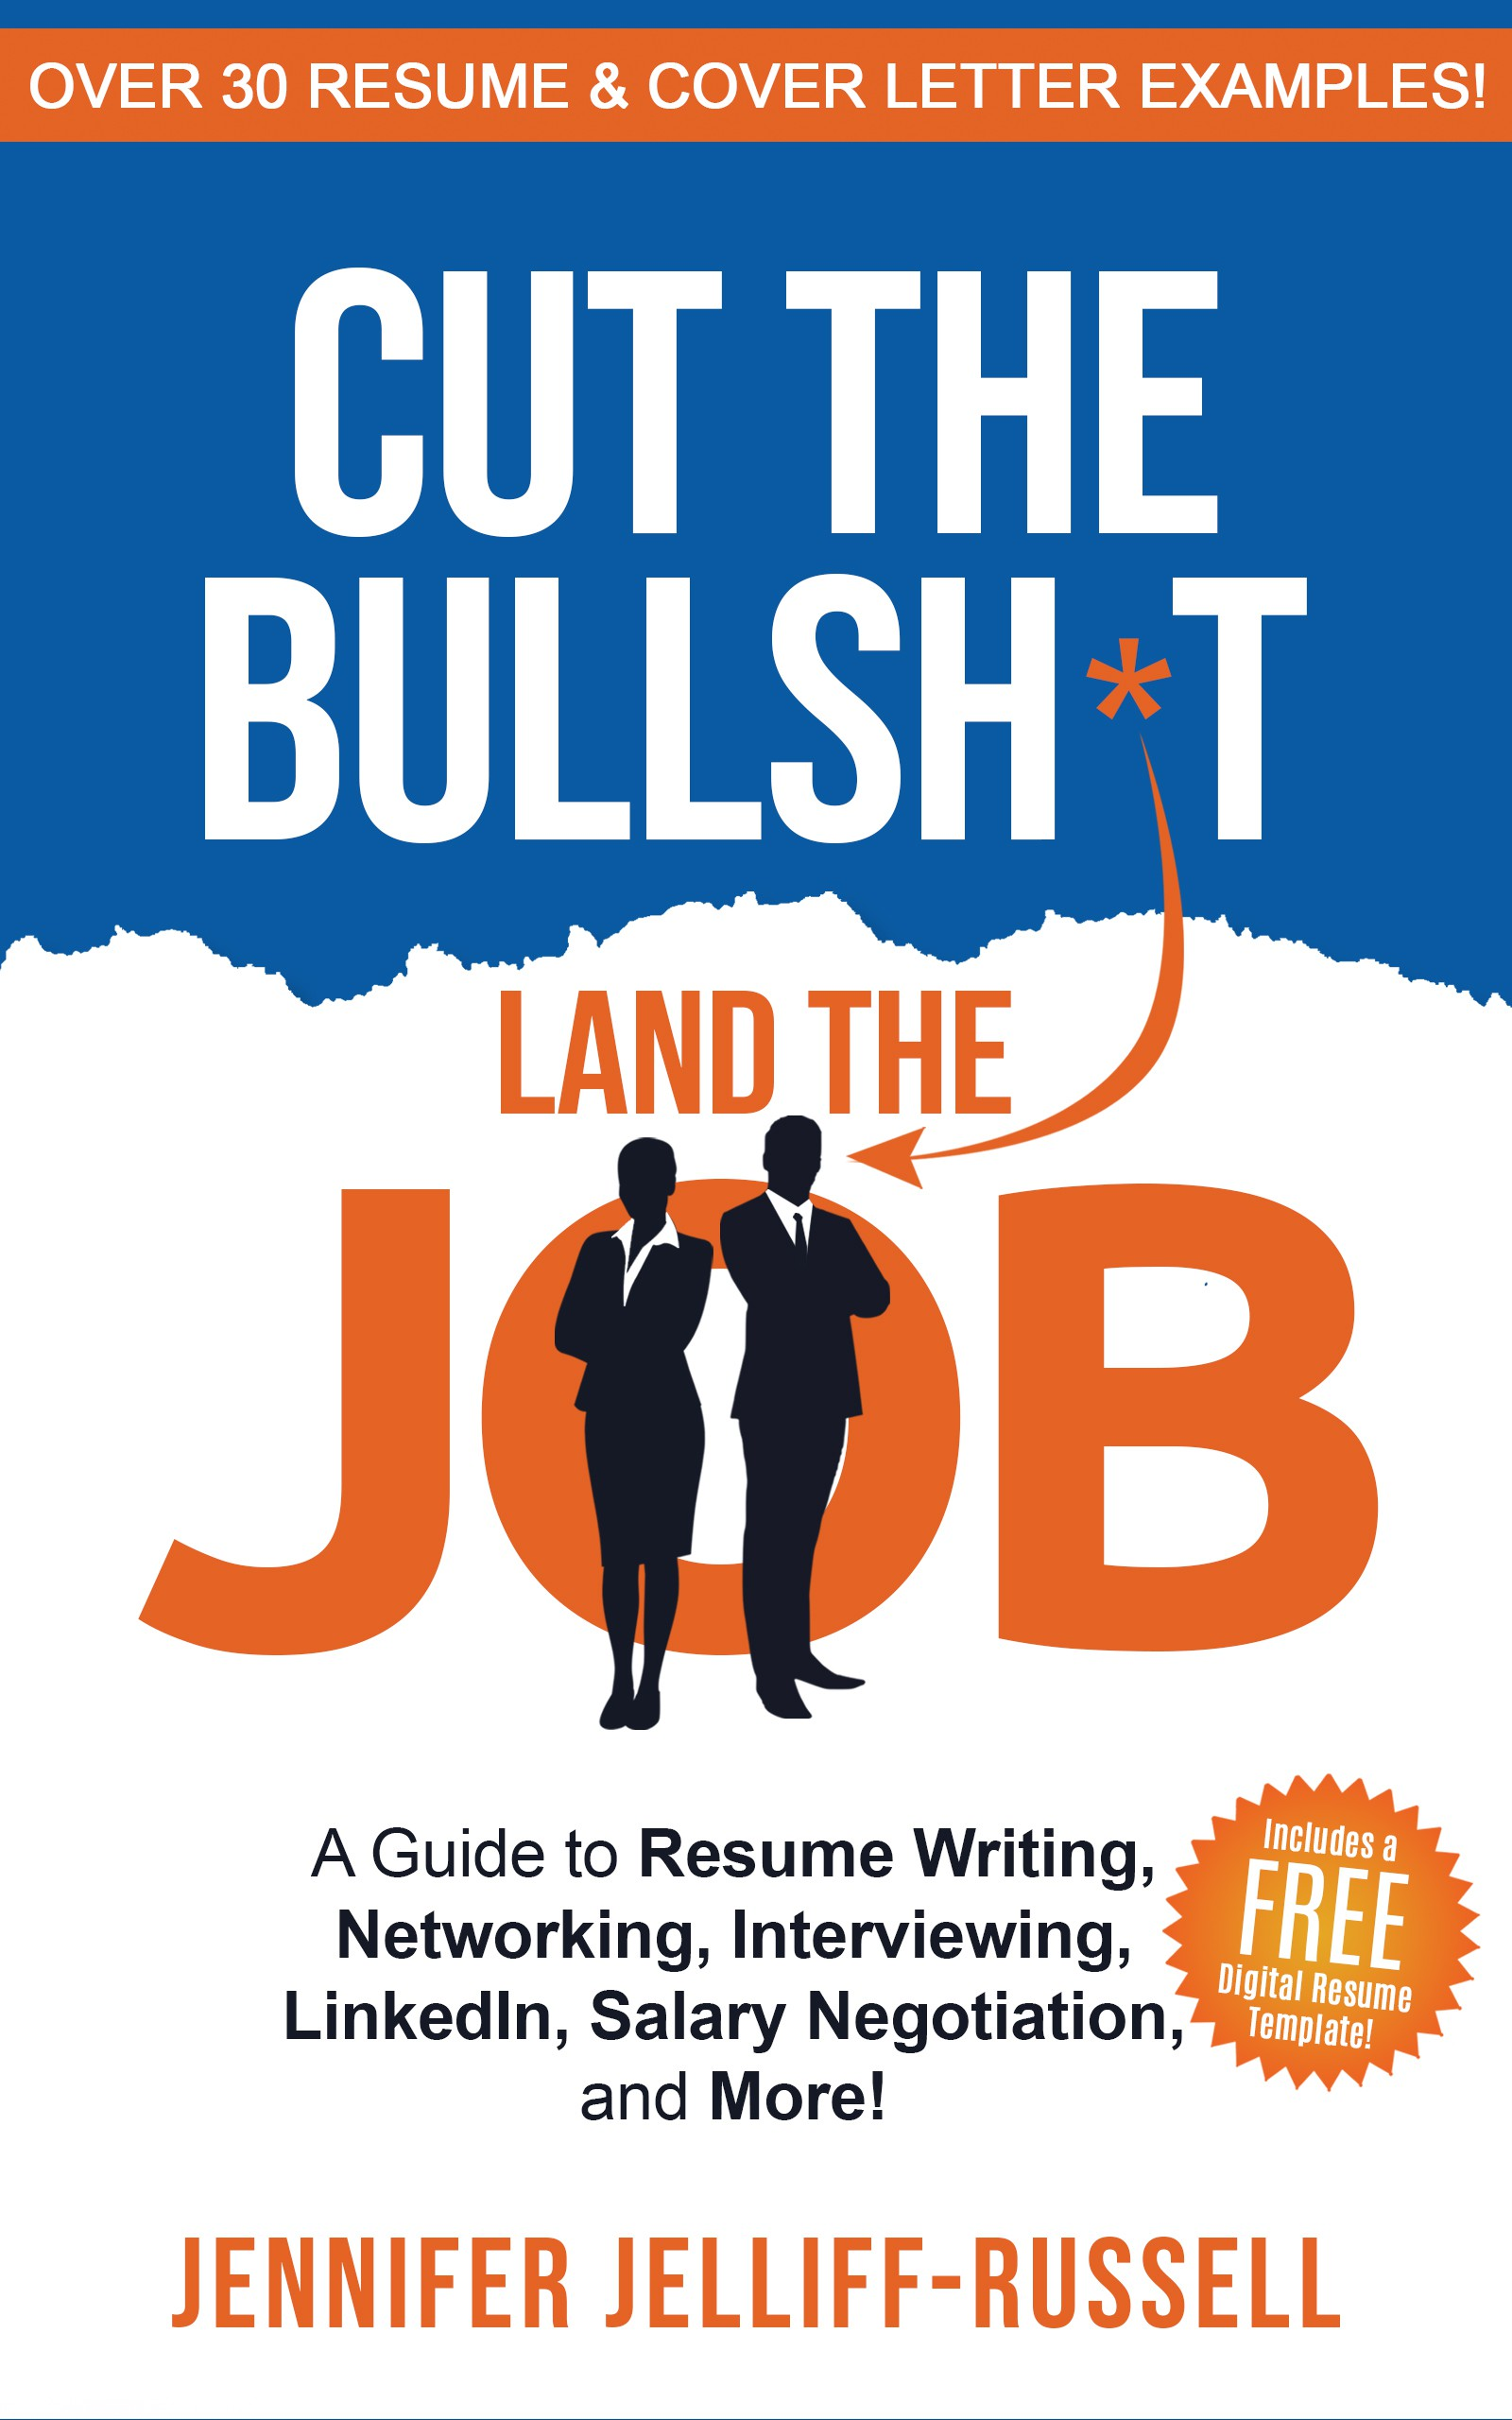 Book cover to capture job-seekers attention